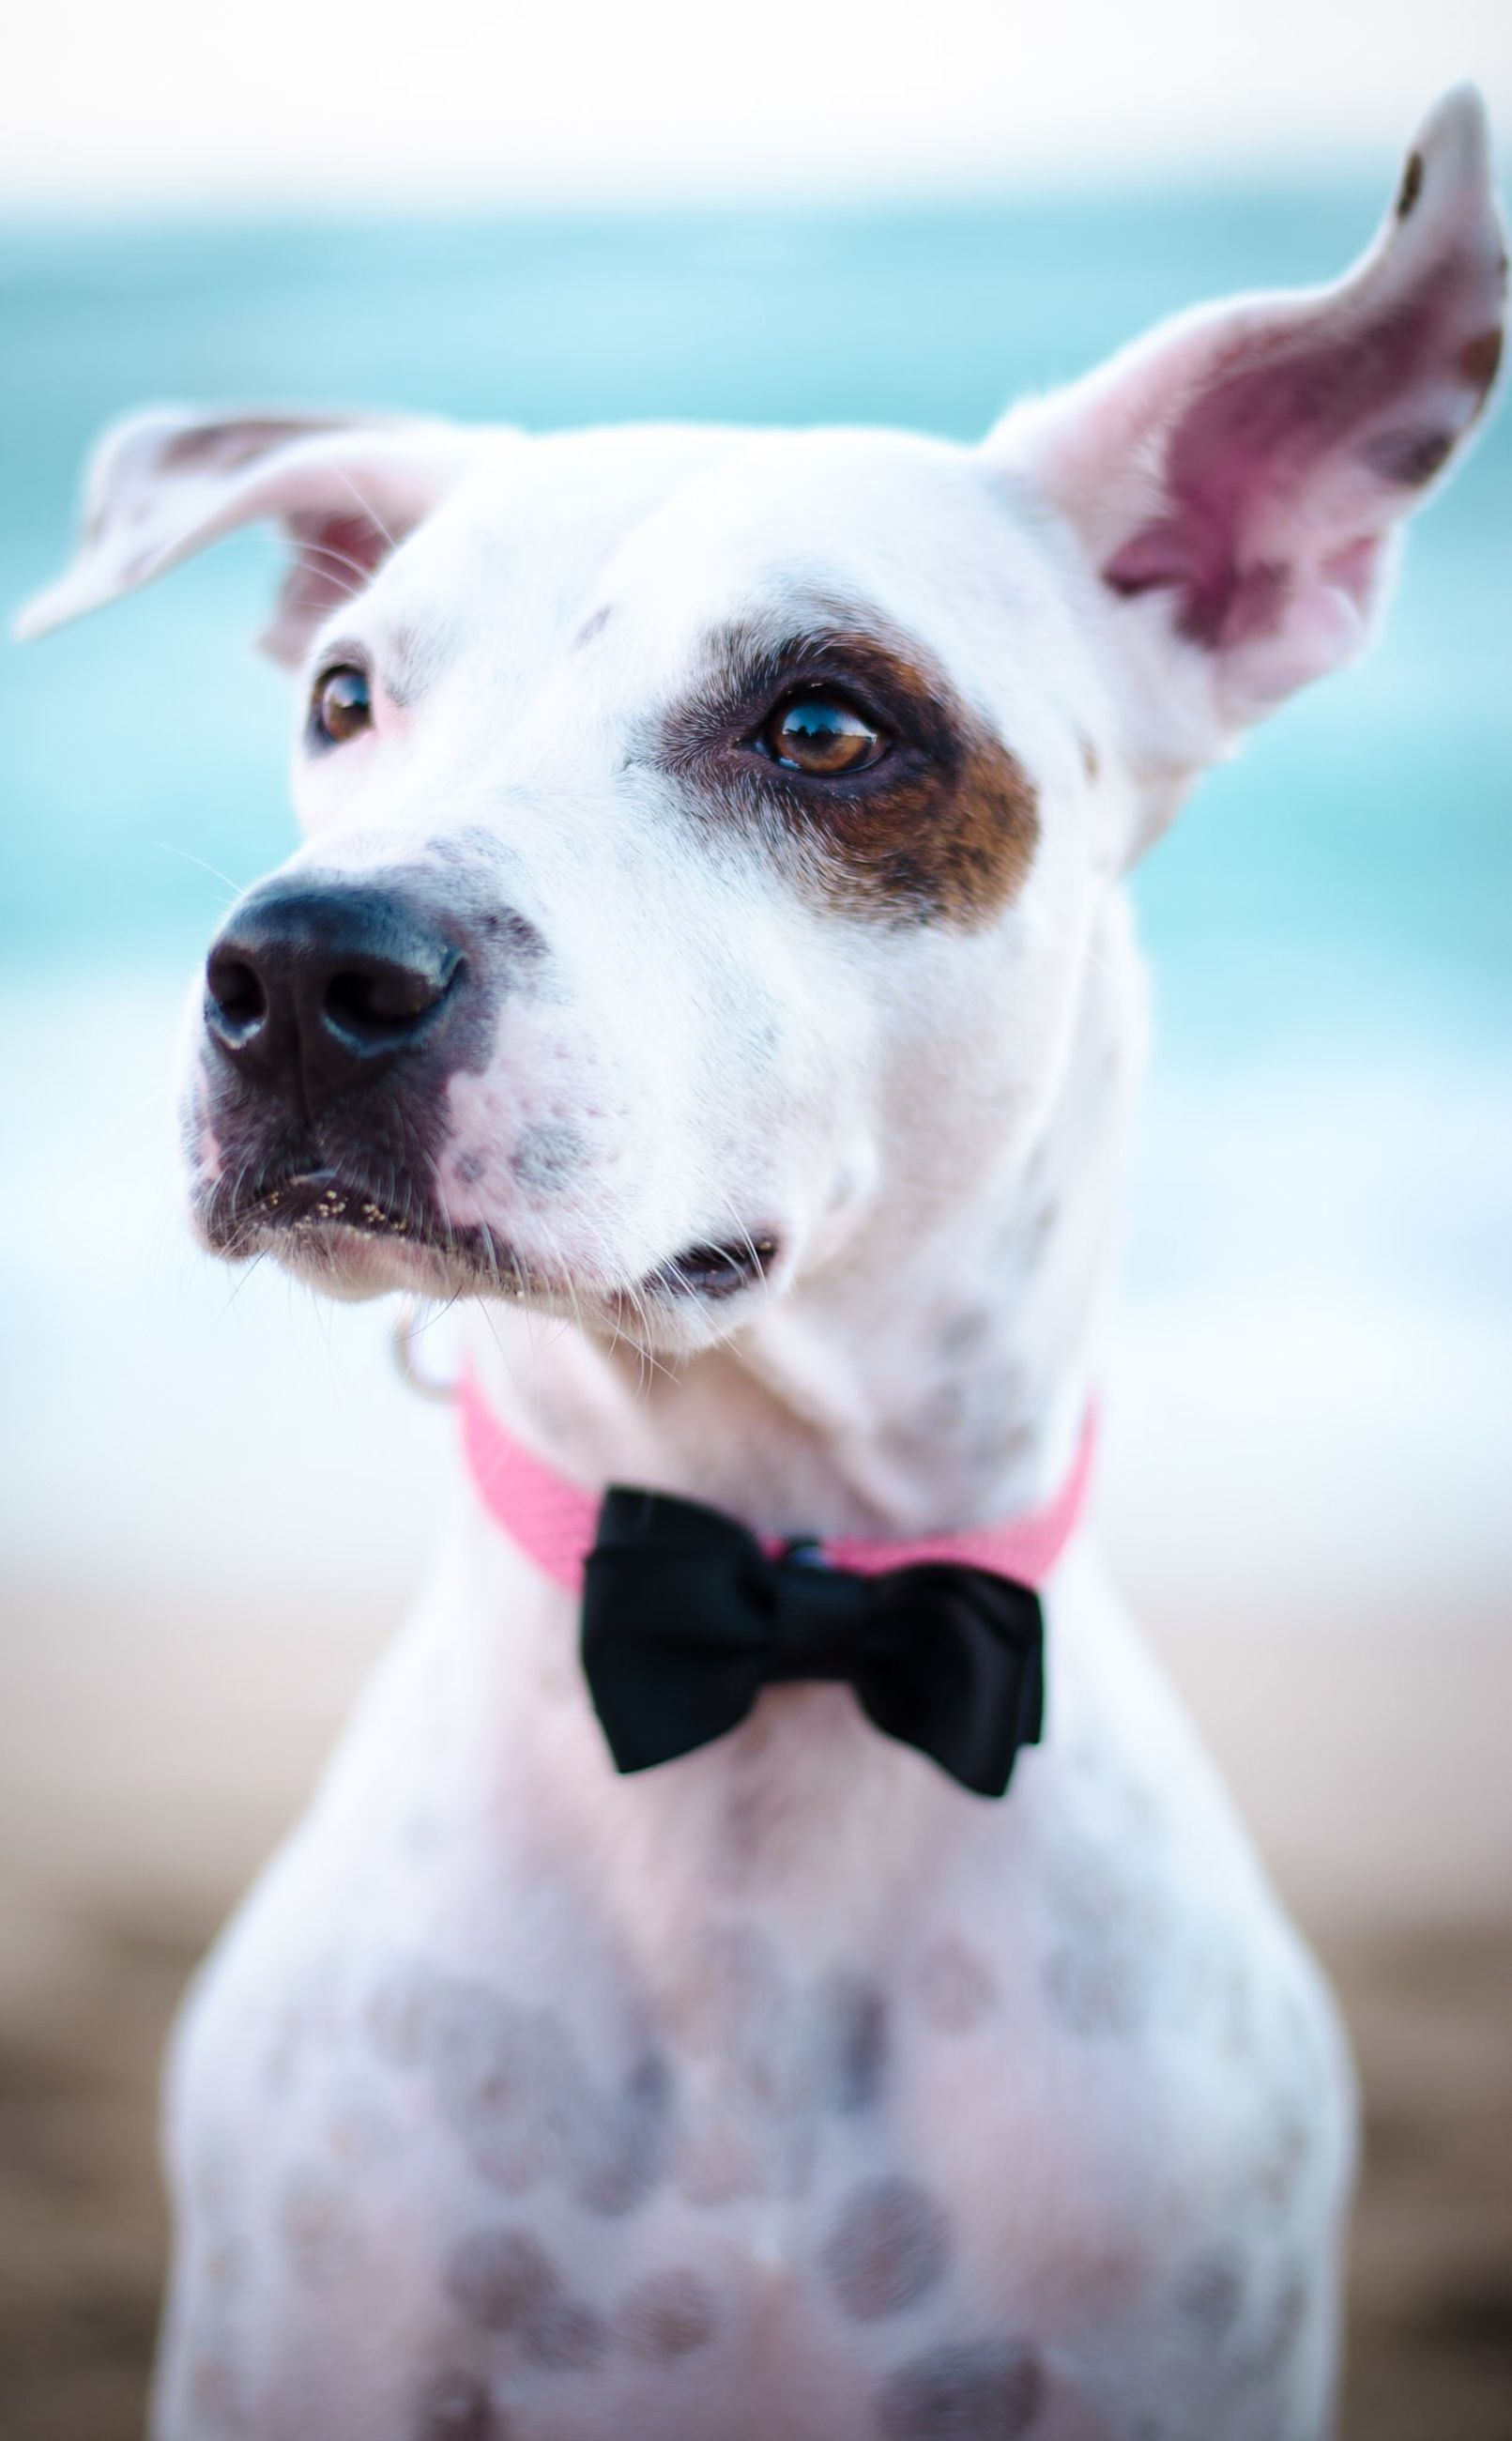 one animal, animal themes, dog, pets, domestic animals, focus on foreground, mammal, portrait, close-up, looking at camera, animal head, pet collar, front view, day, mouth open, outdoors, one person, animal body part, nature